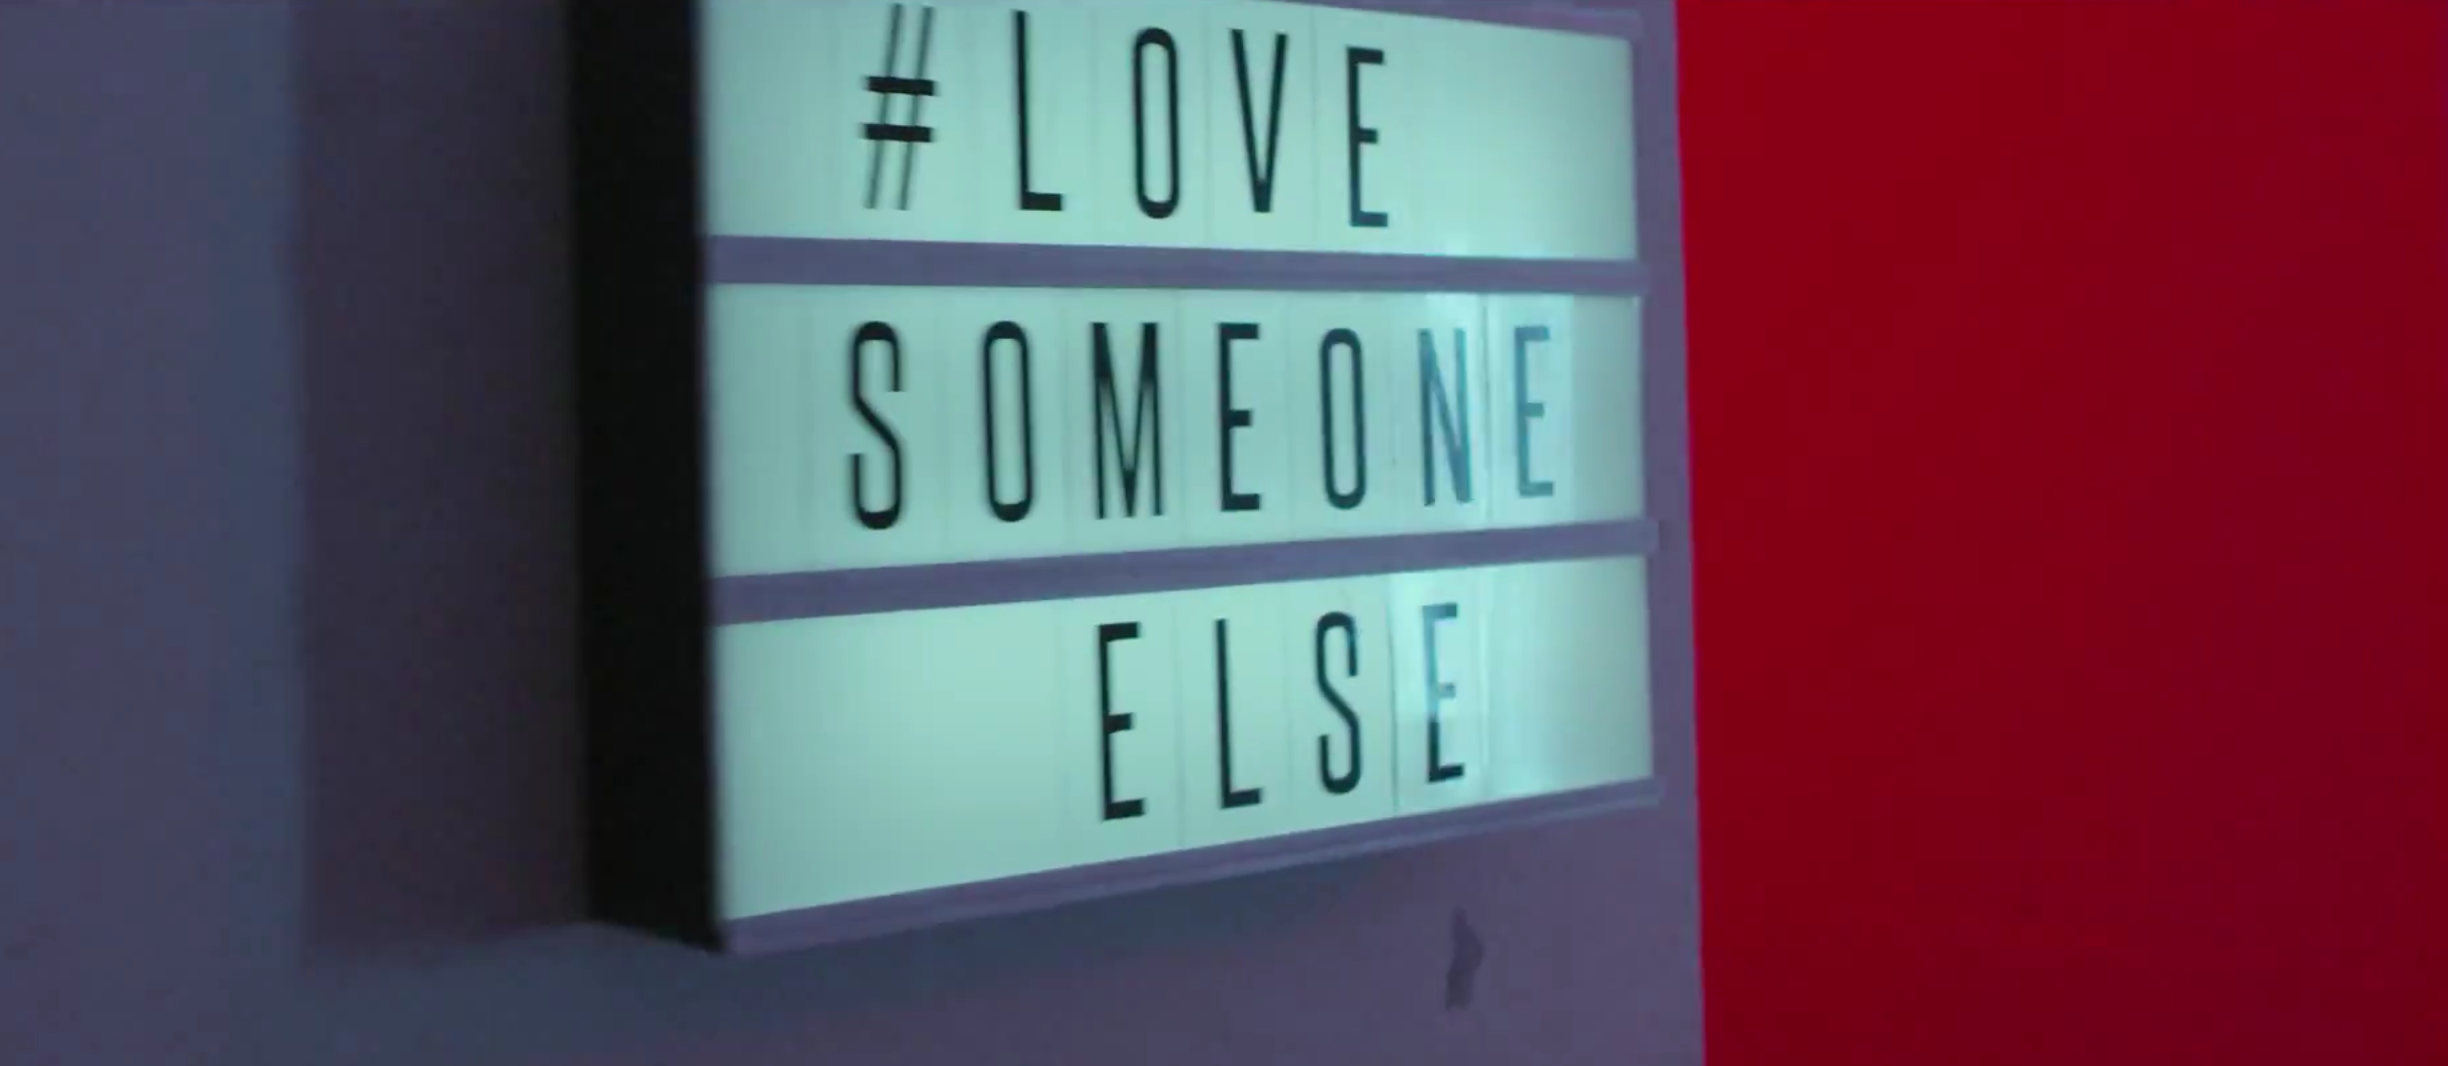 VIDEO: SKUNK ANANSIE - Love Someone Else